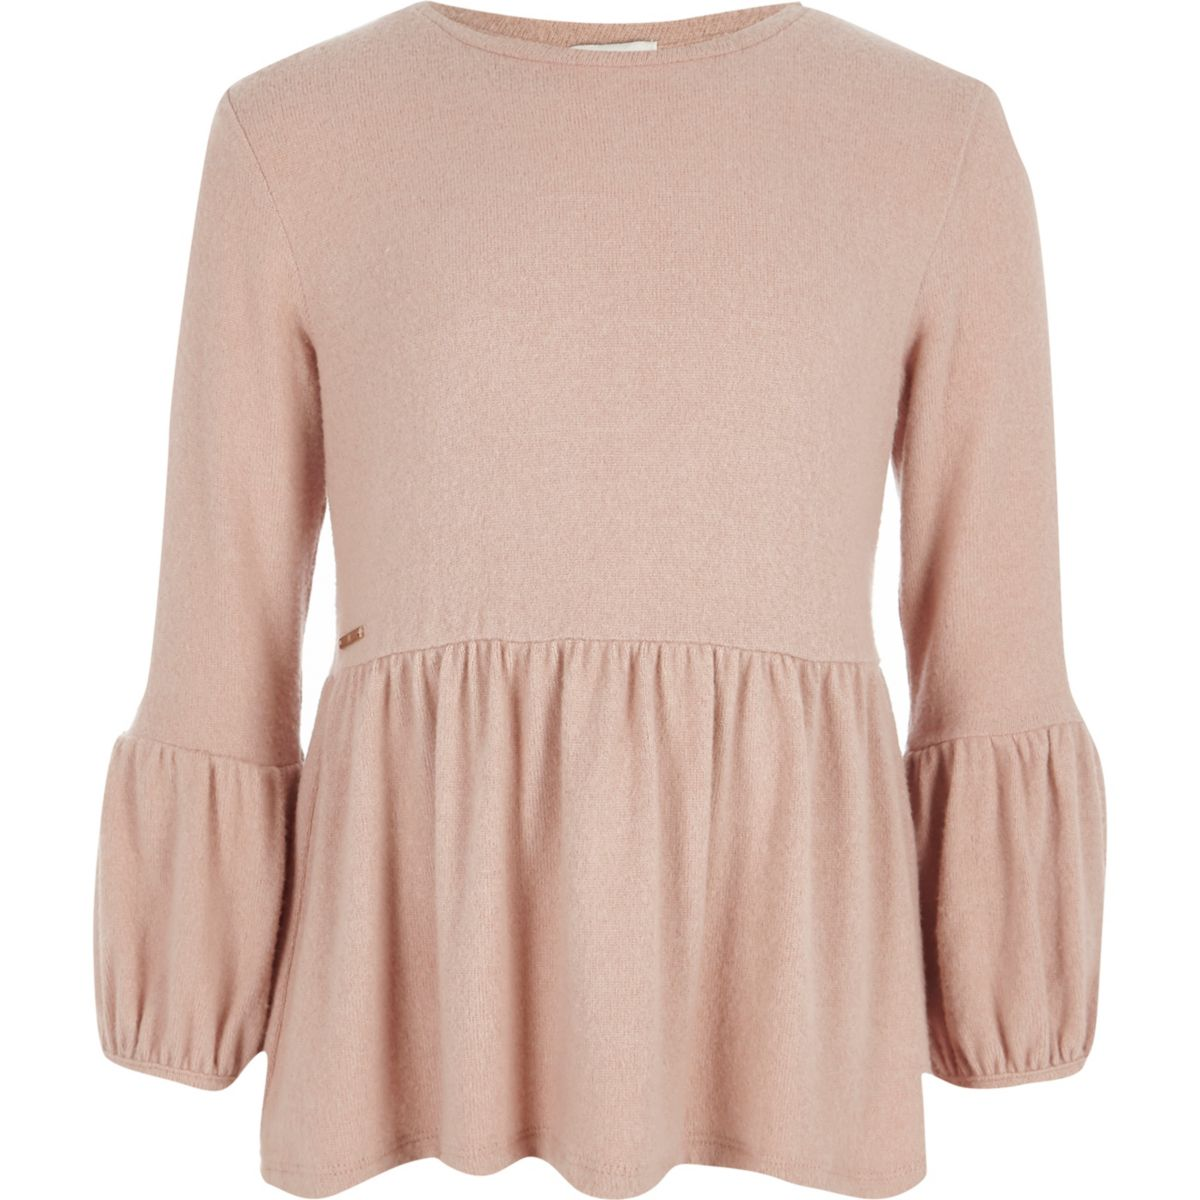 Find girls peplum tops at ShopStyle. Shop the latest collection of girls peplum tops from the most popular stores - all in one place.